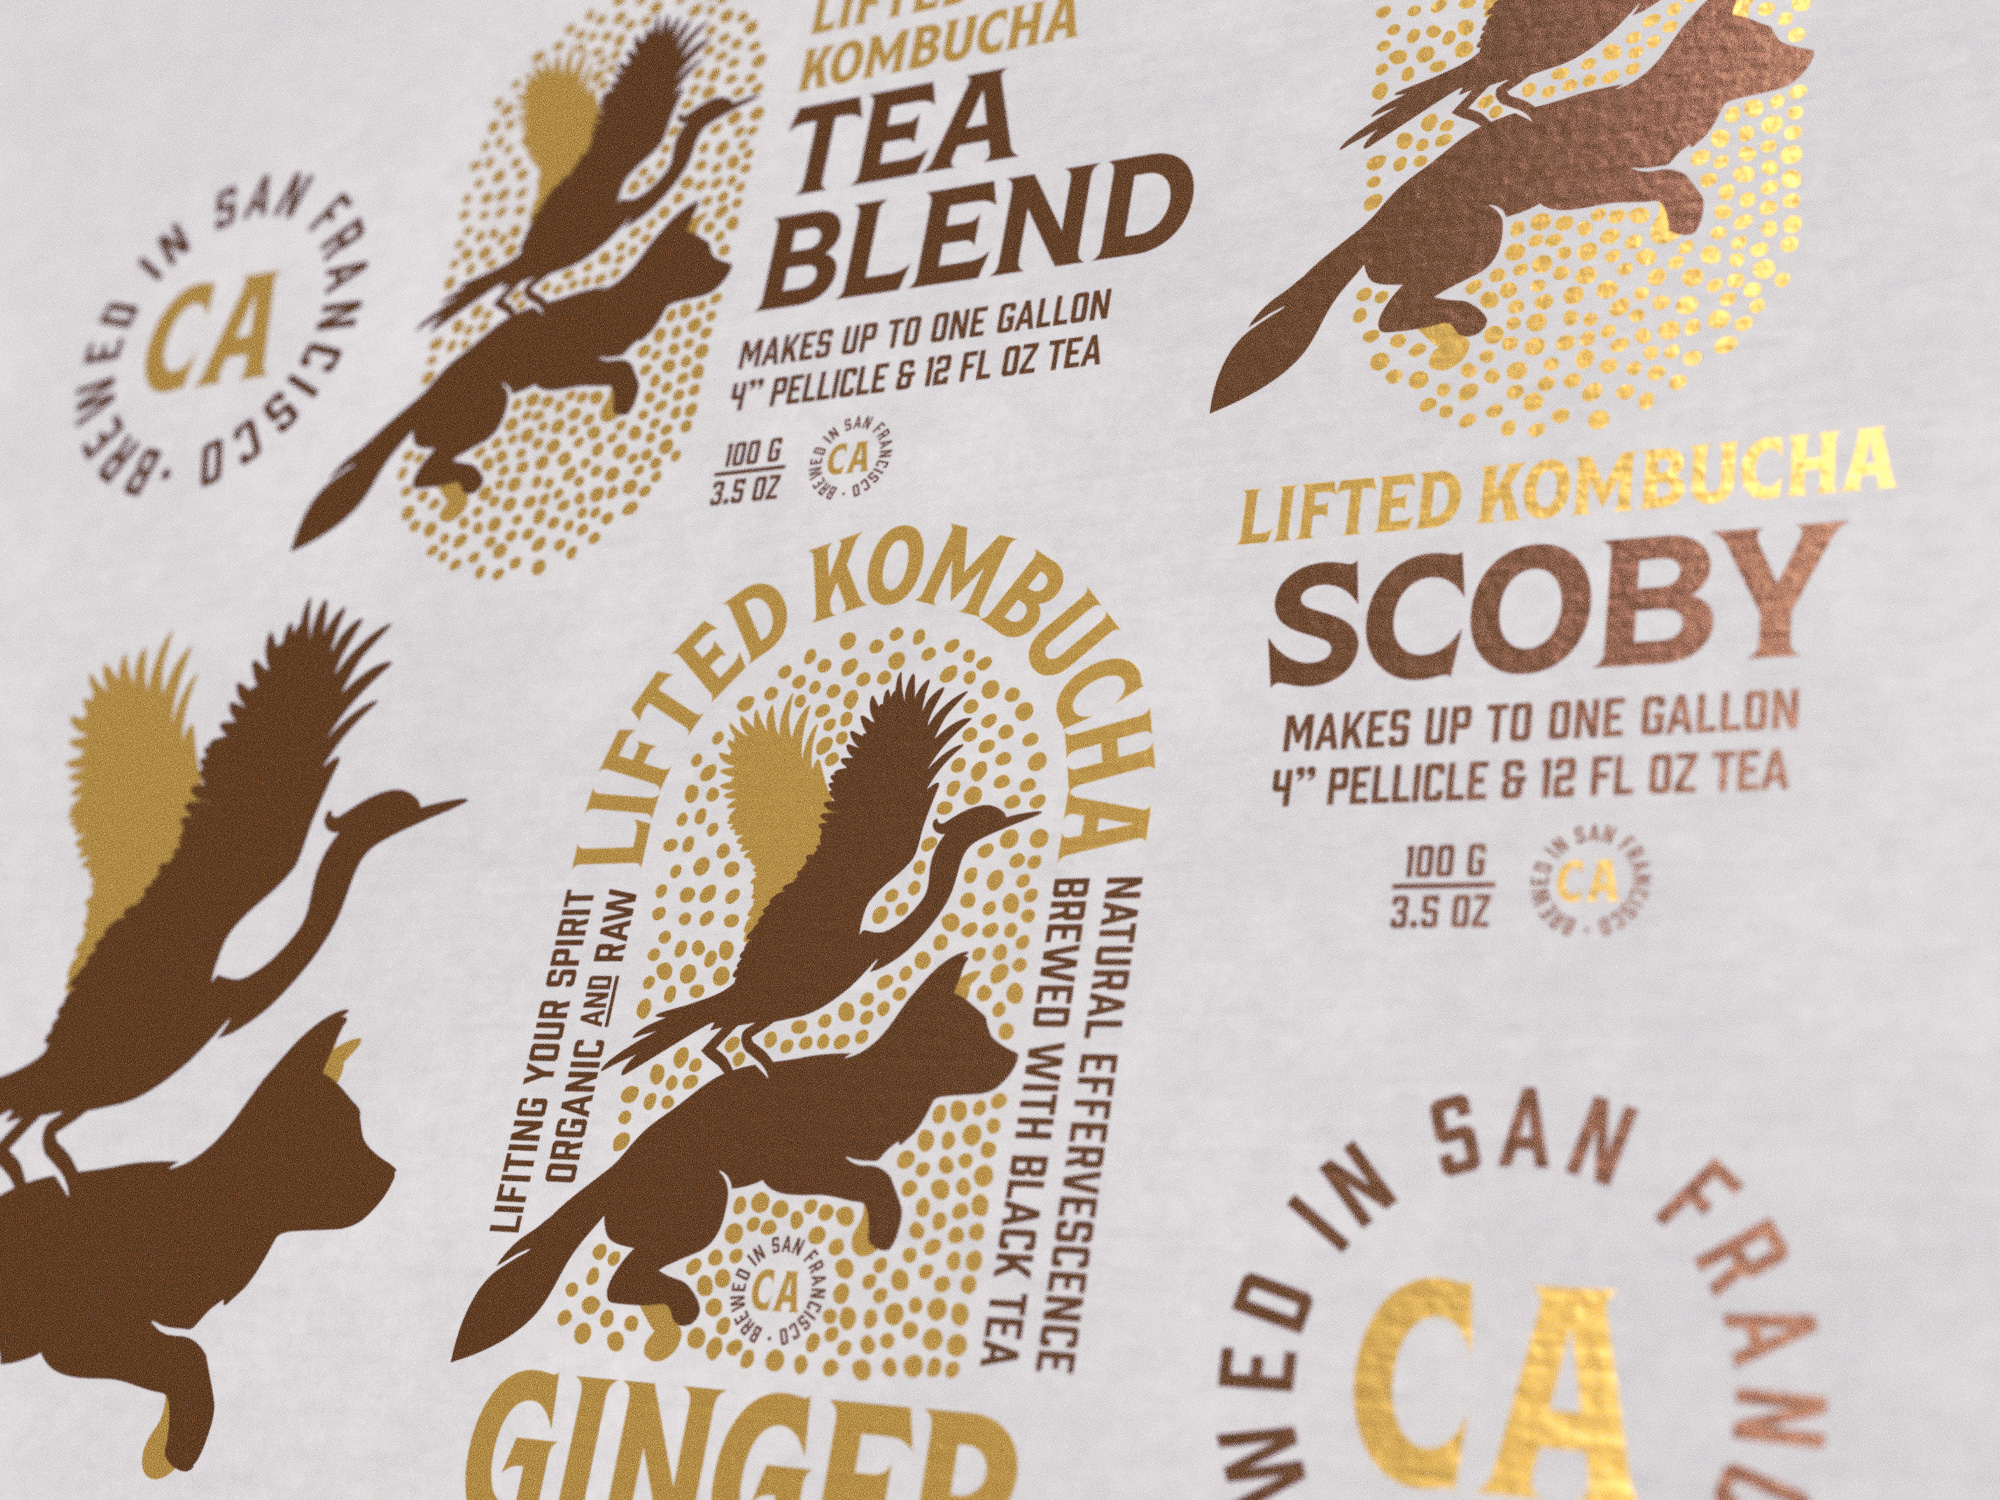 New Conceptual Kombucha Packaging: Lifted Kombucha